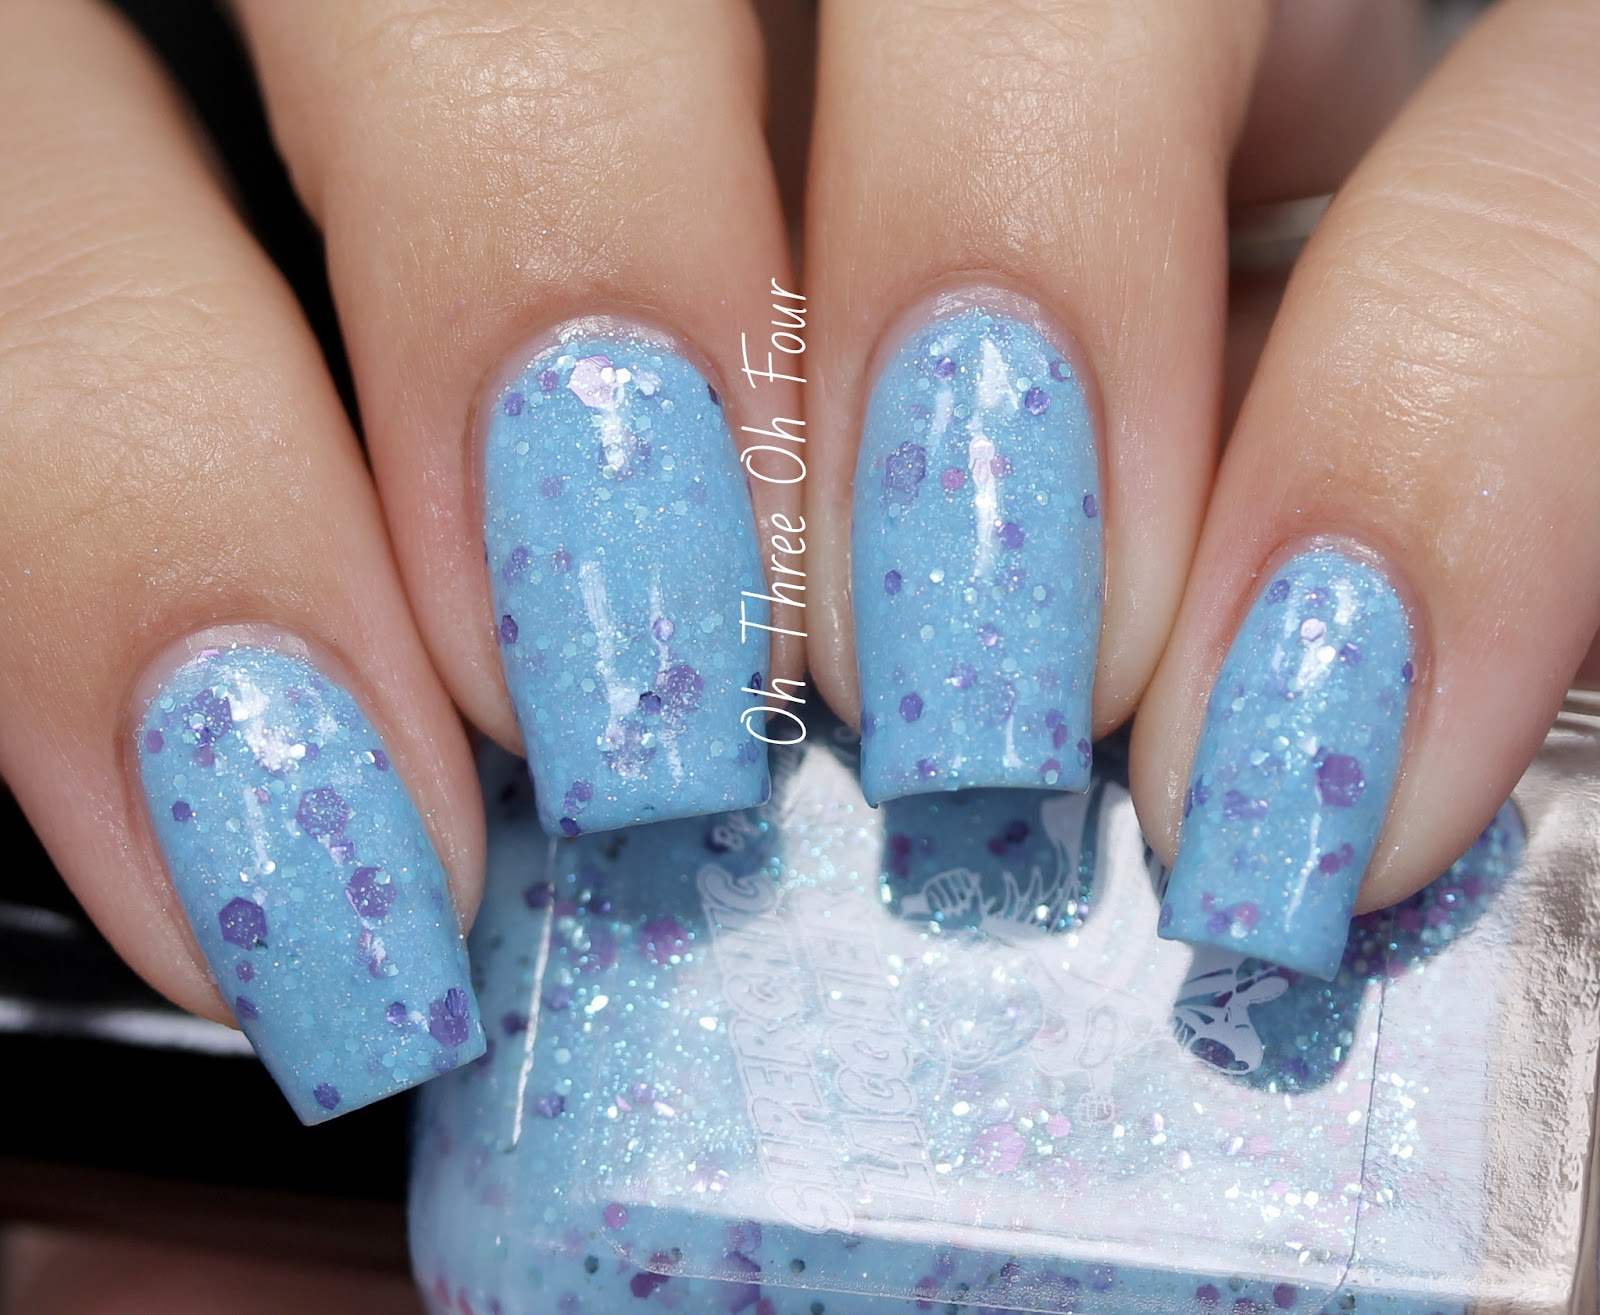 SuperChic Lacquer Wendybird Swatch